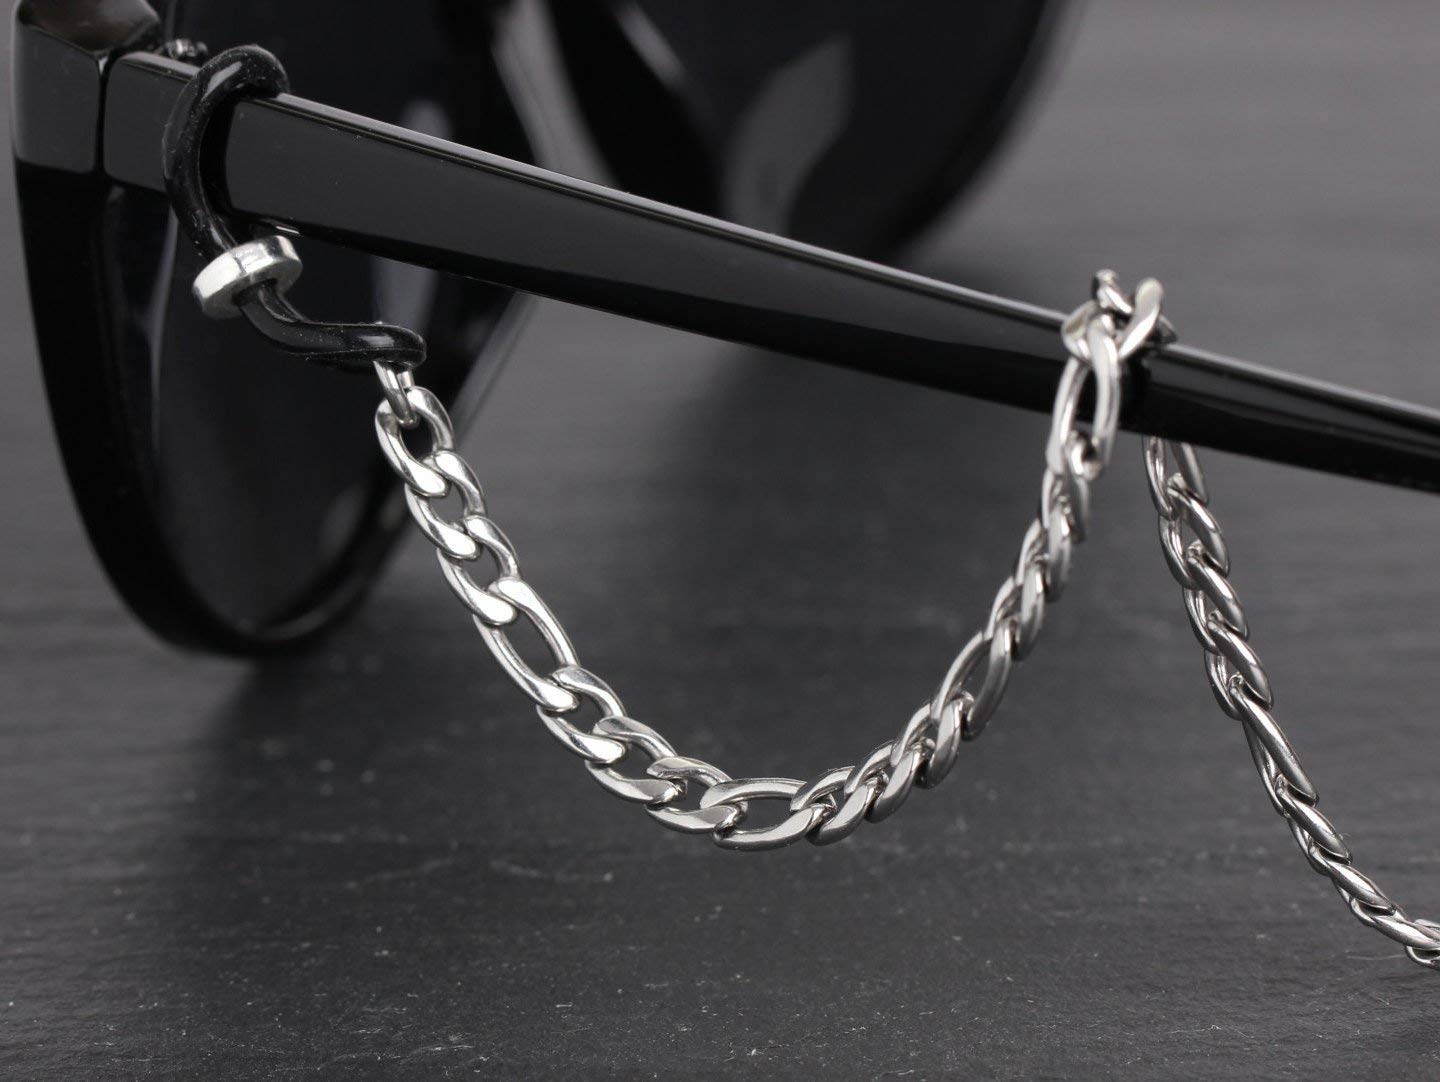 Heavy Duty Stainless Steel Eyeglass Chain, Silver Figaro Chain Glasses Rope, Metal Sunglasses Cord Neck Strap, Men's Eyeglass Holder for Readers, Half Snow, 26 inches